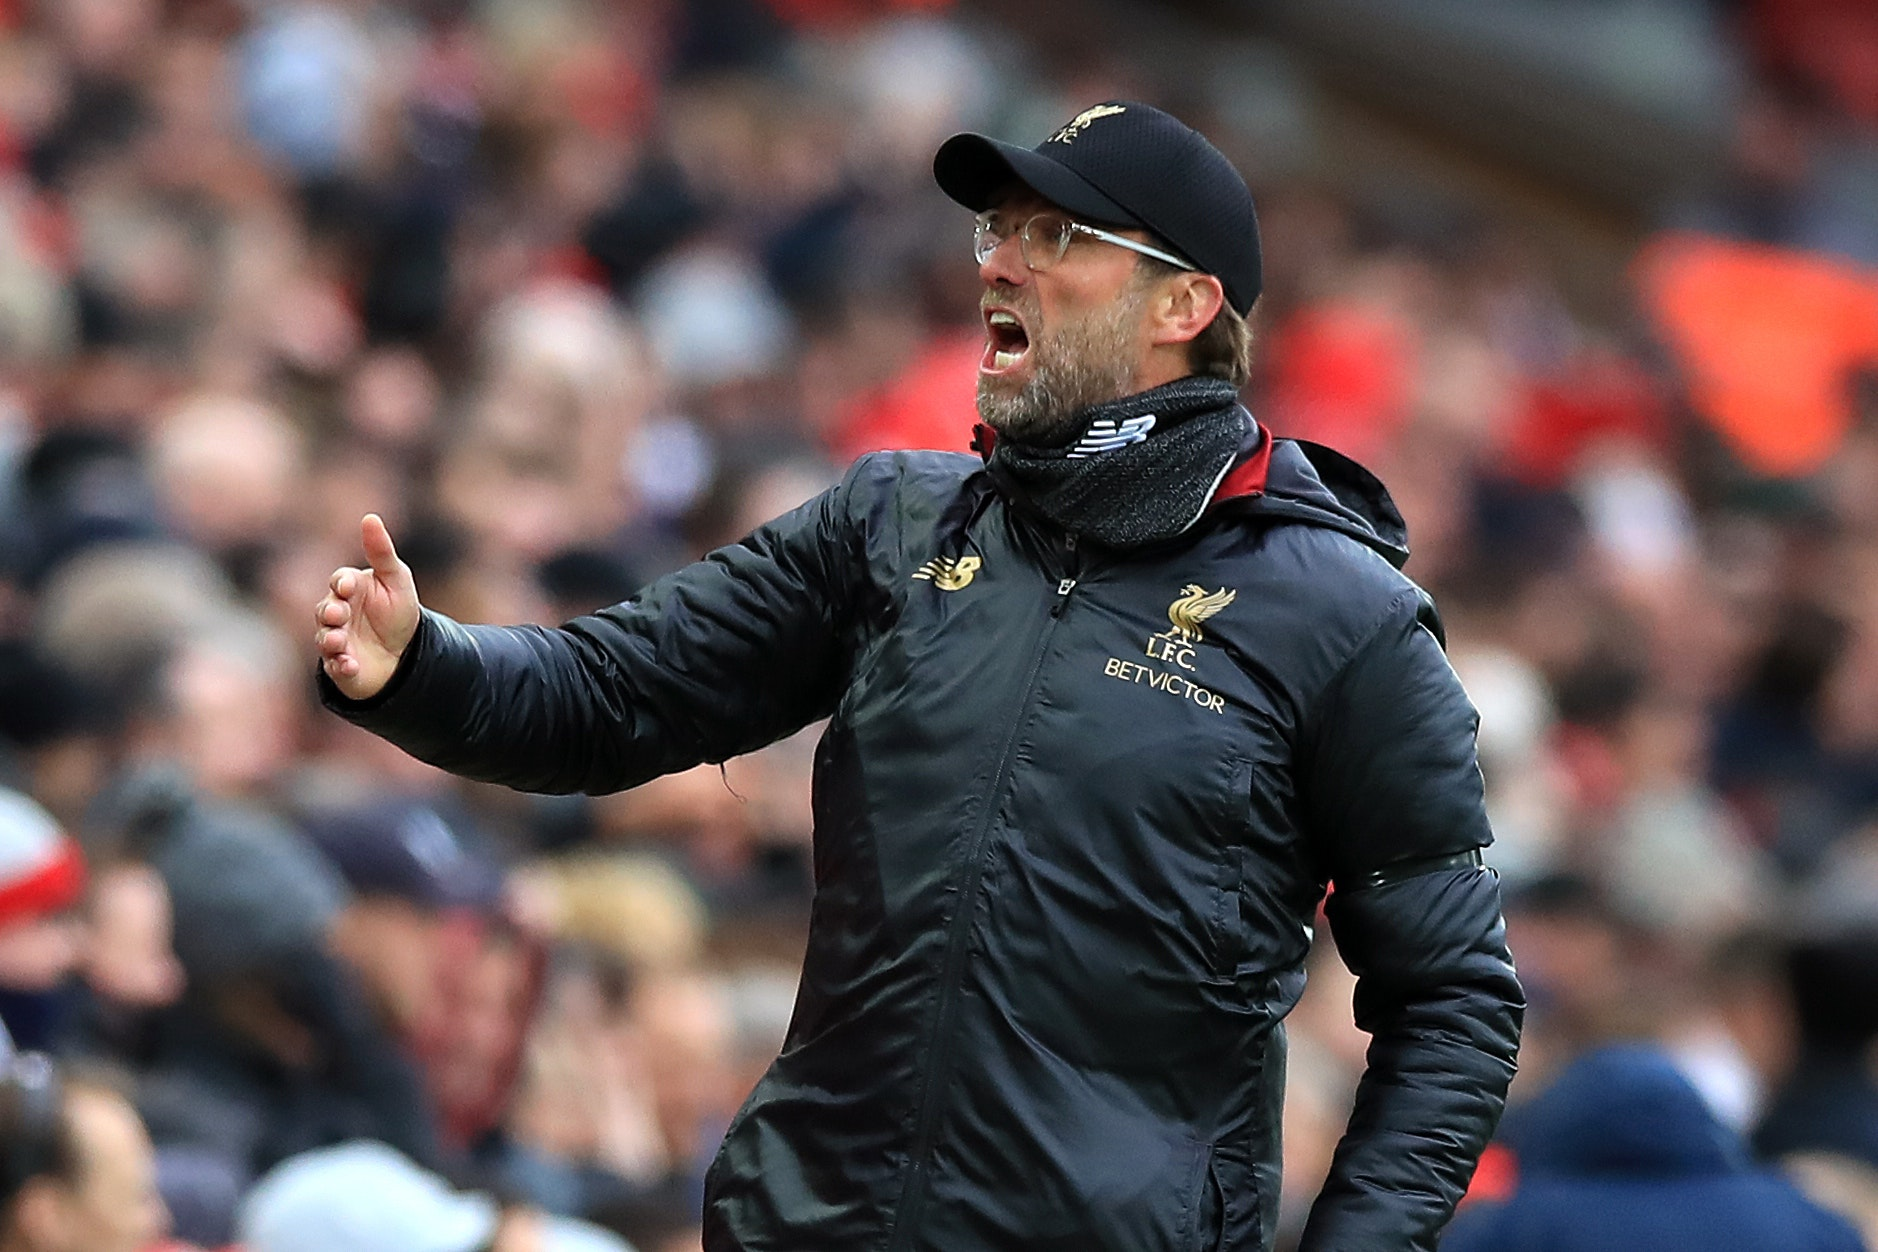 Liverpool manager Jurgen Klopp has set his sights on a club-record points haul in their close title race with Manchester City